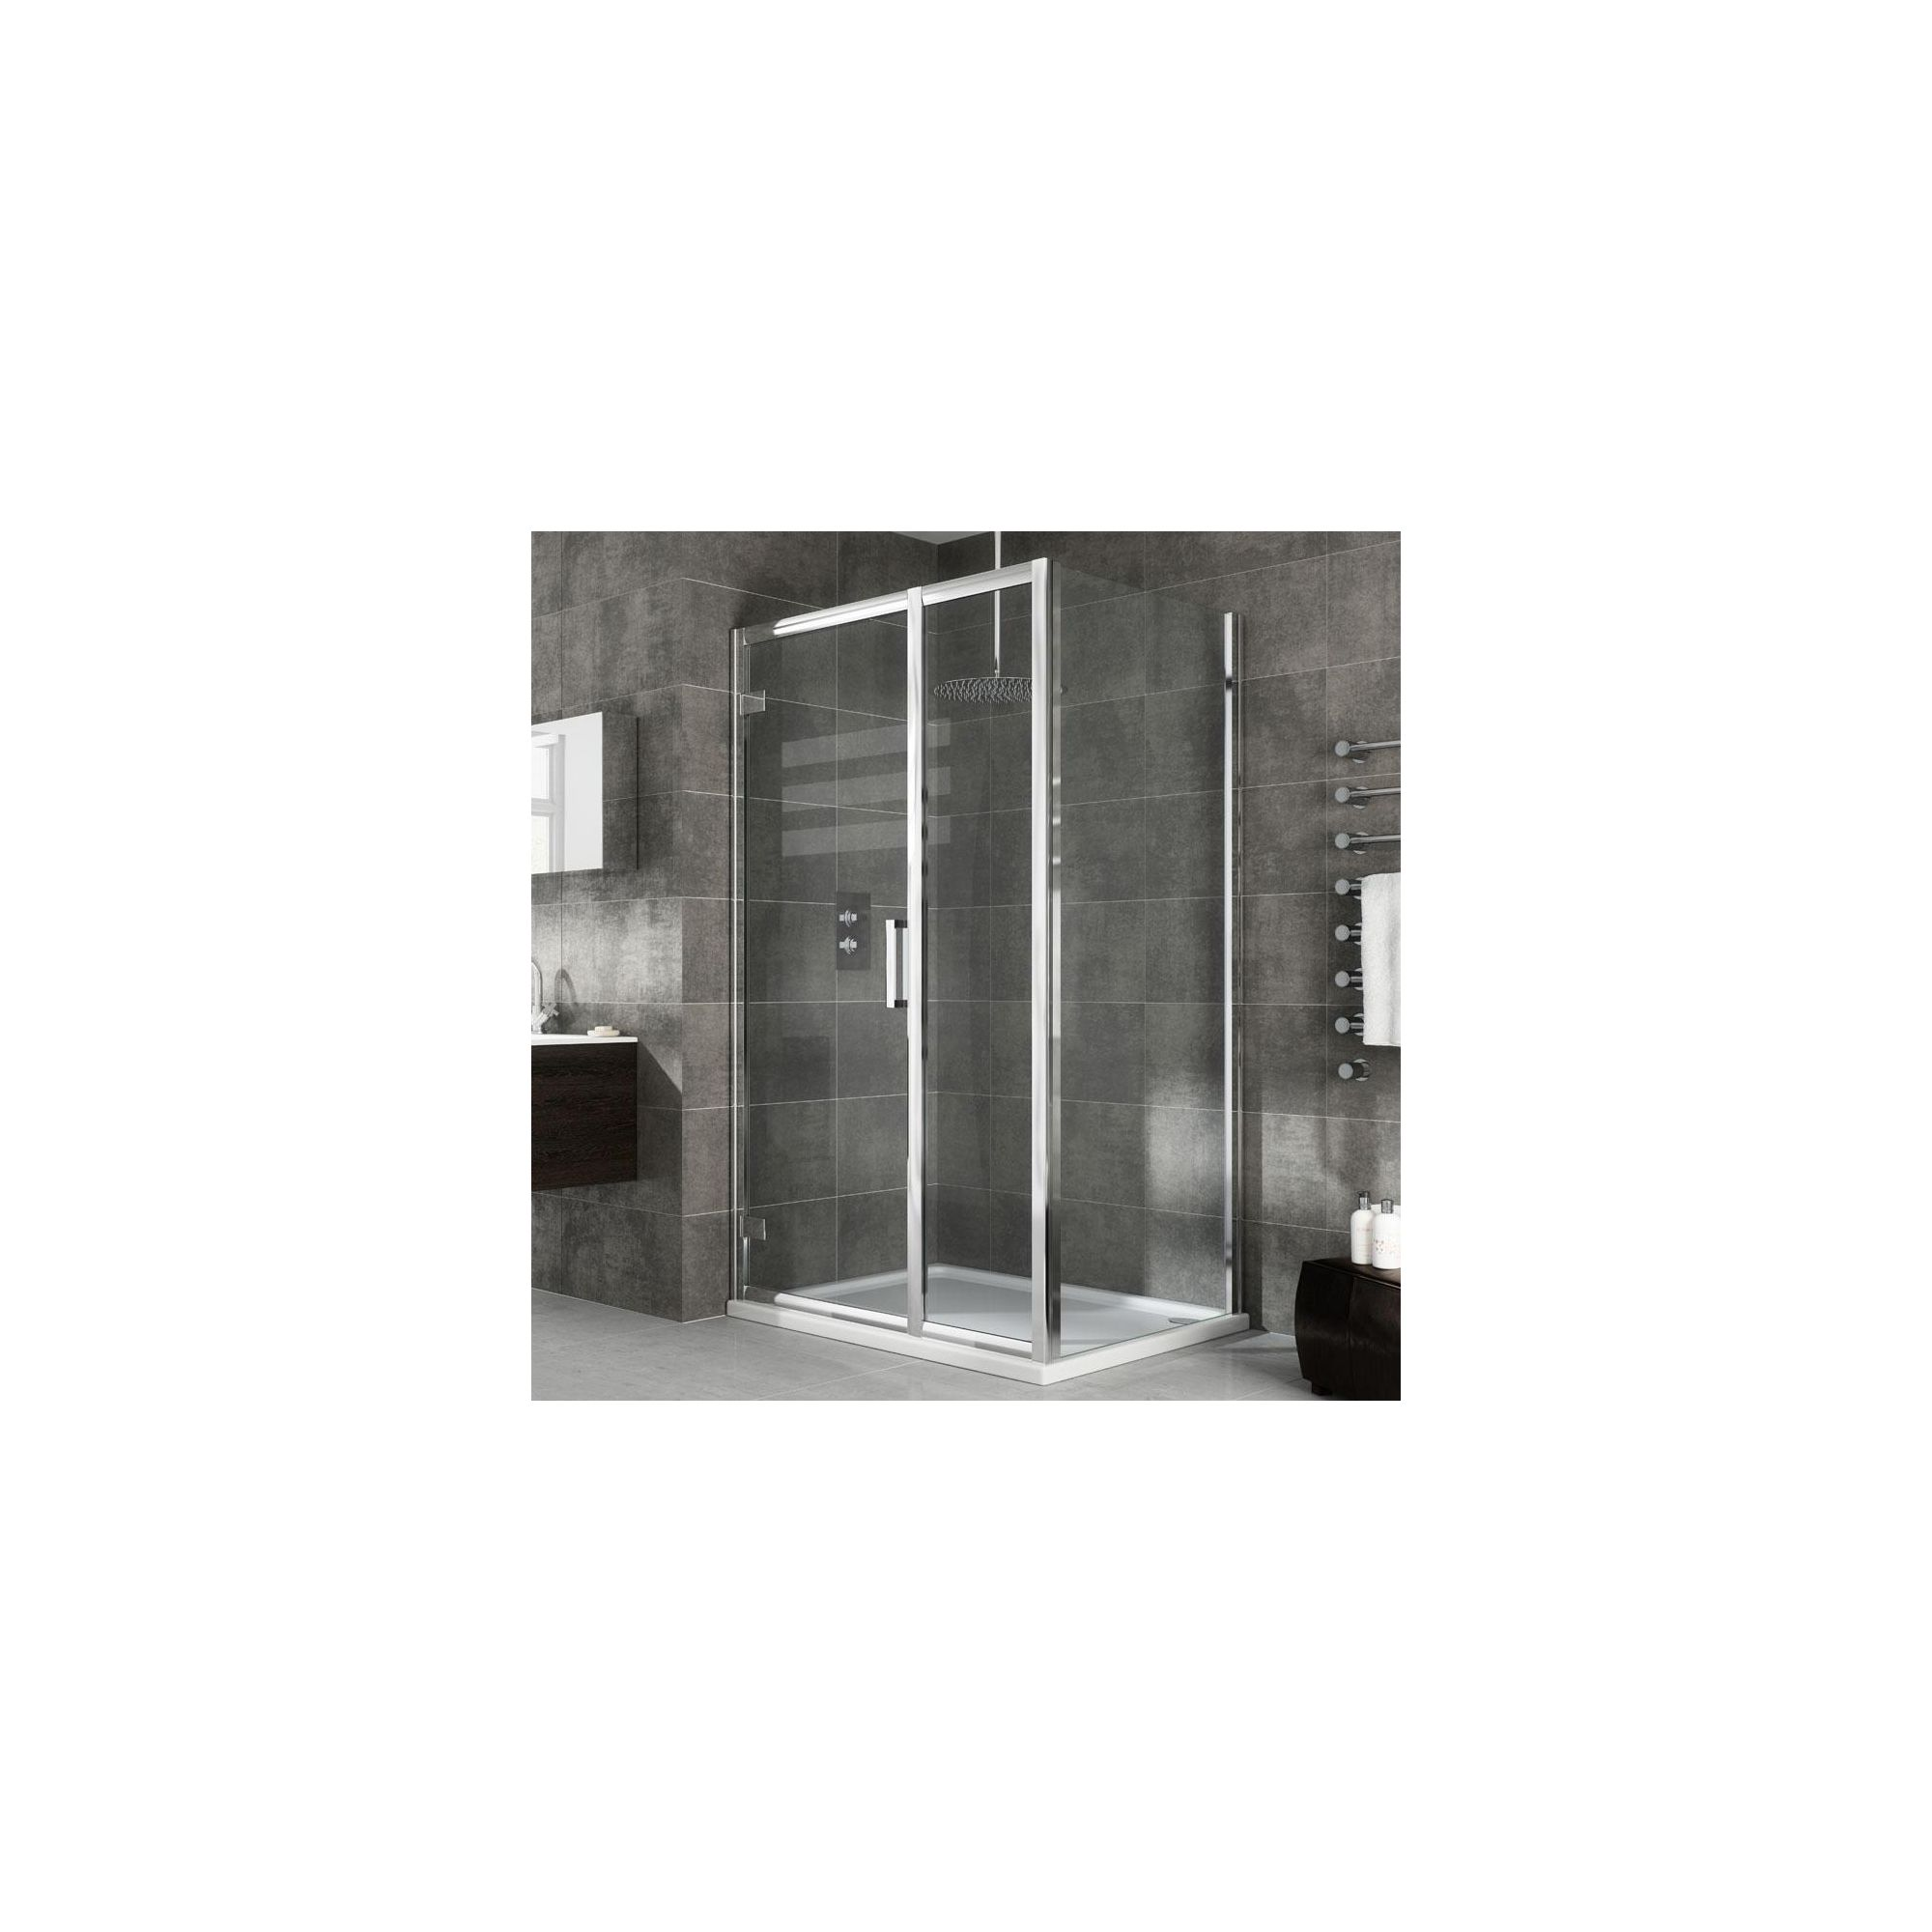 Elemis Eternity Inline Hinged Door Shower Enclosure, 1000mm x 800mm, 8mm Glass, Low Profile Tray at Tesco Direct